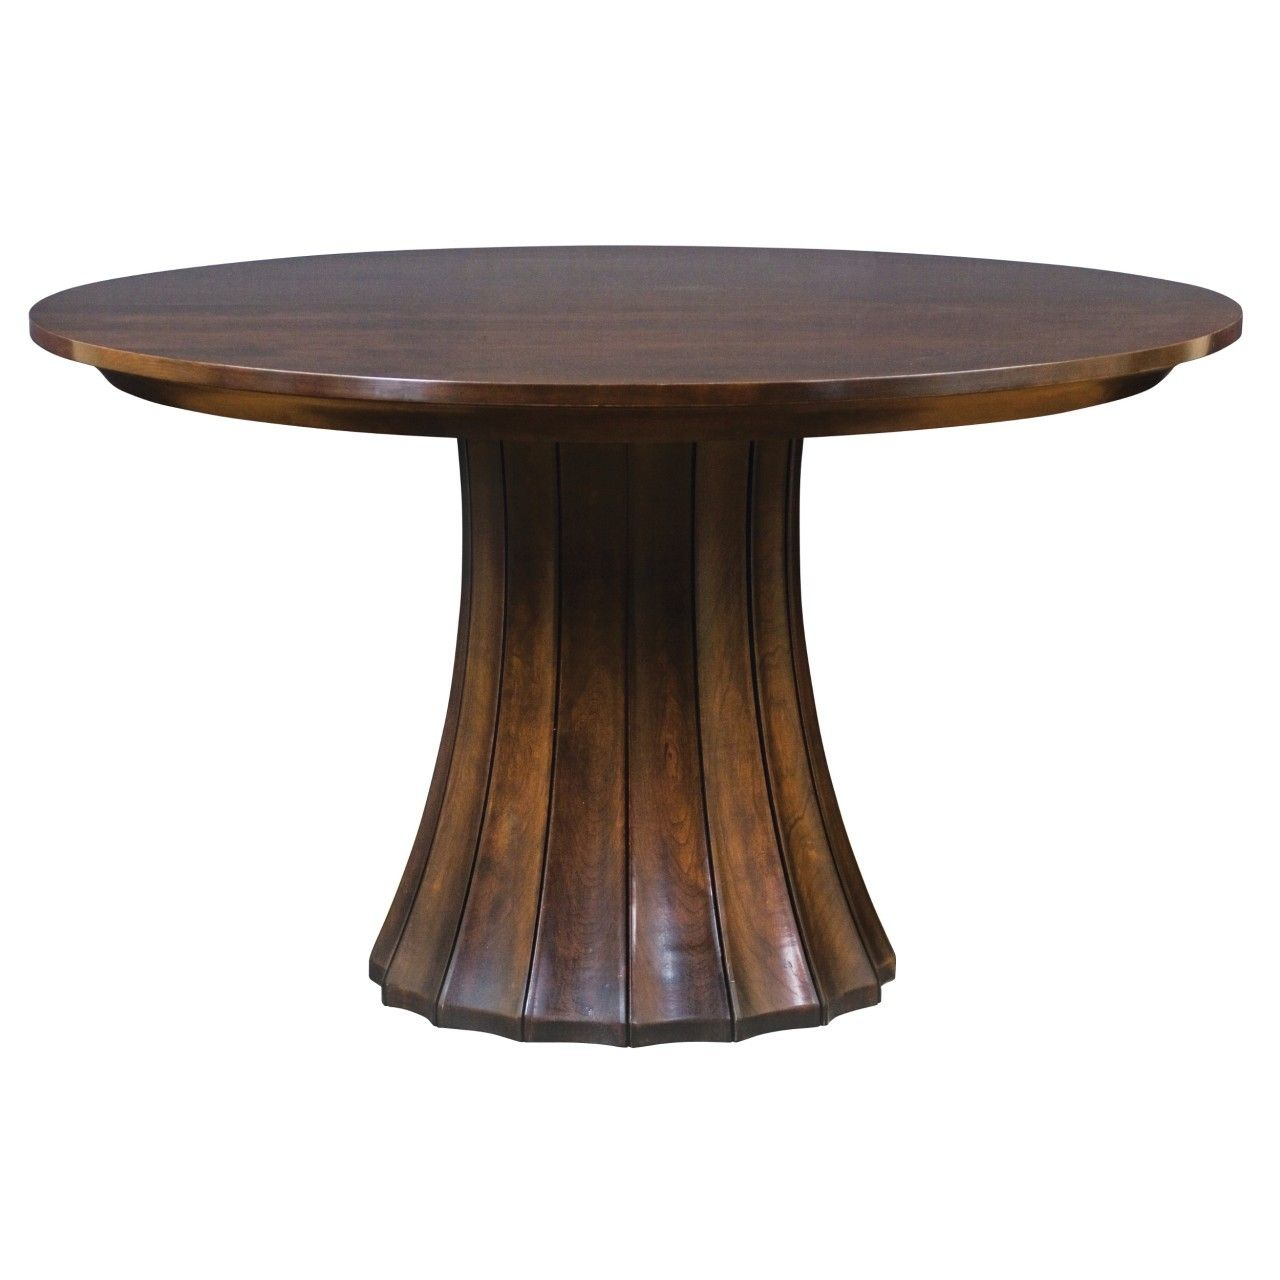 Second Hand Coffee Tables Images